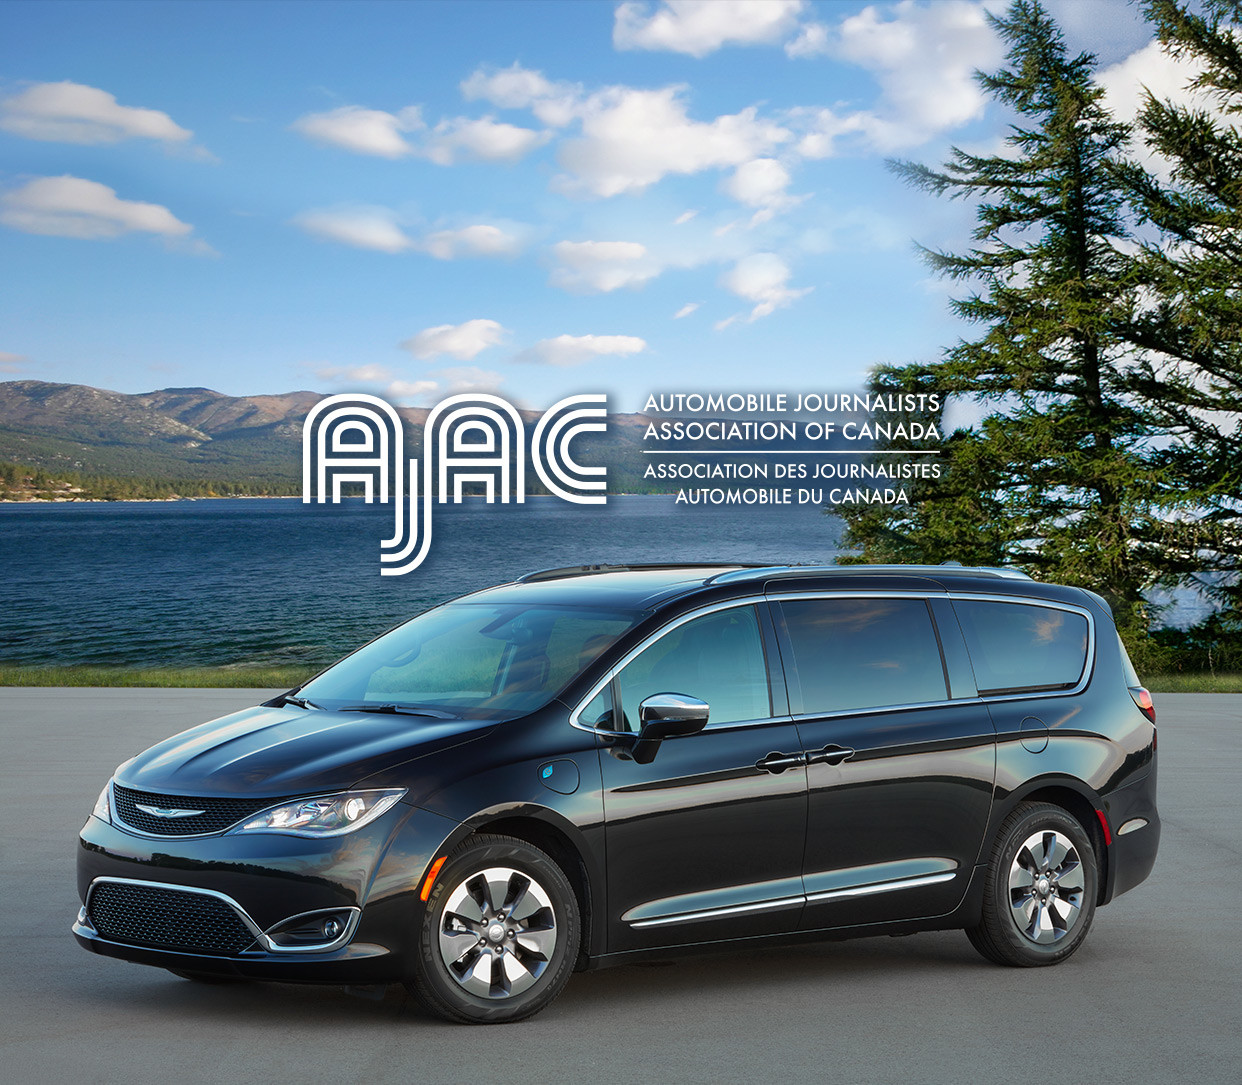 Black 2020 Chrysler Pacifica Hybrid parked in front of a lake with AJAC logo.